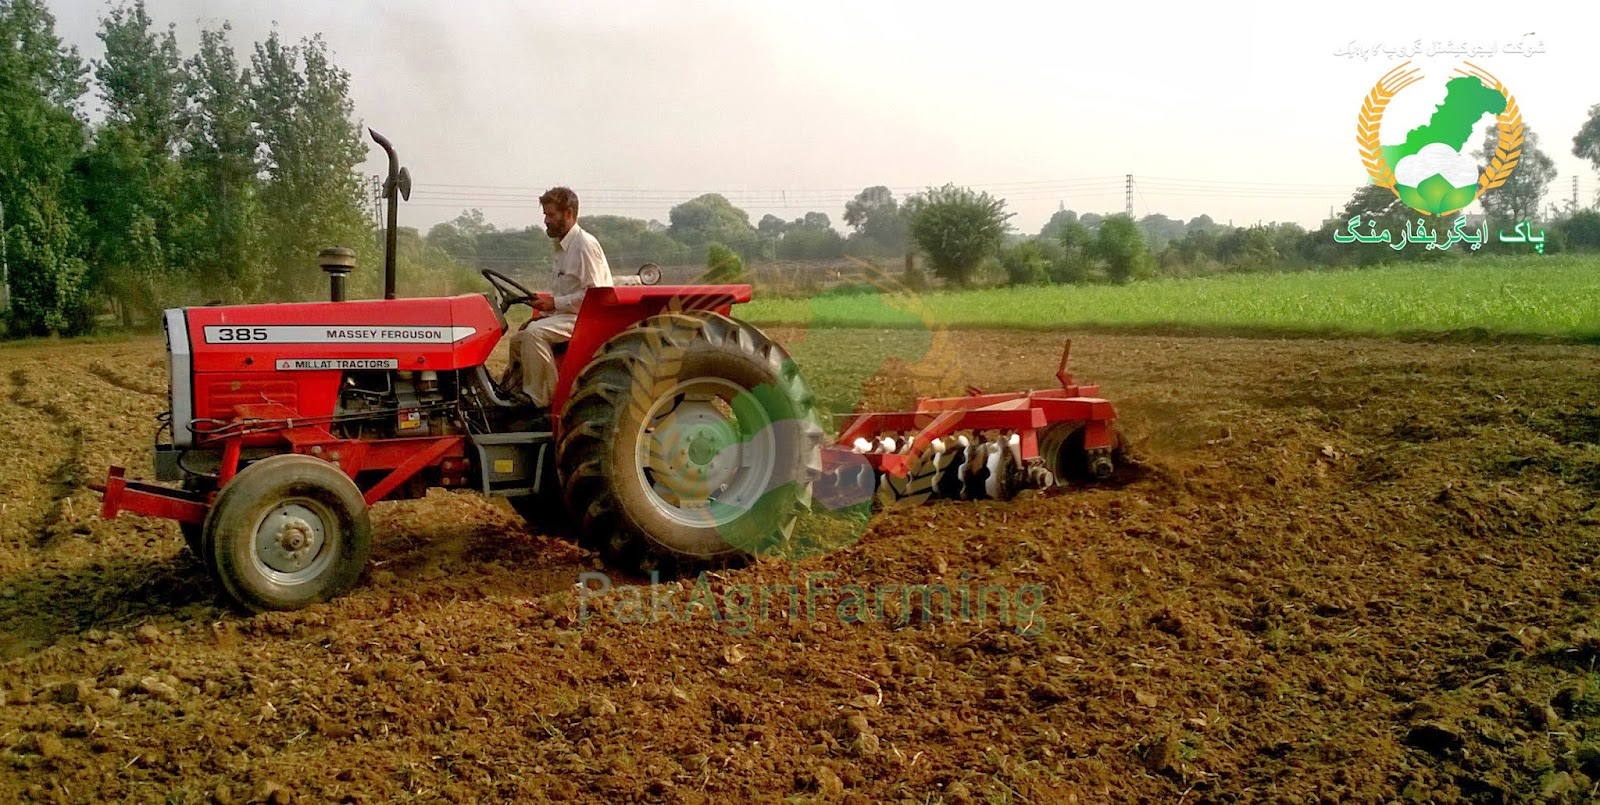 Tillage disc plowing in the field pakagrifarming